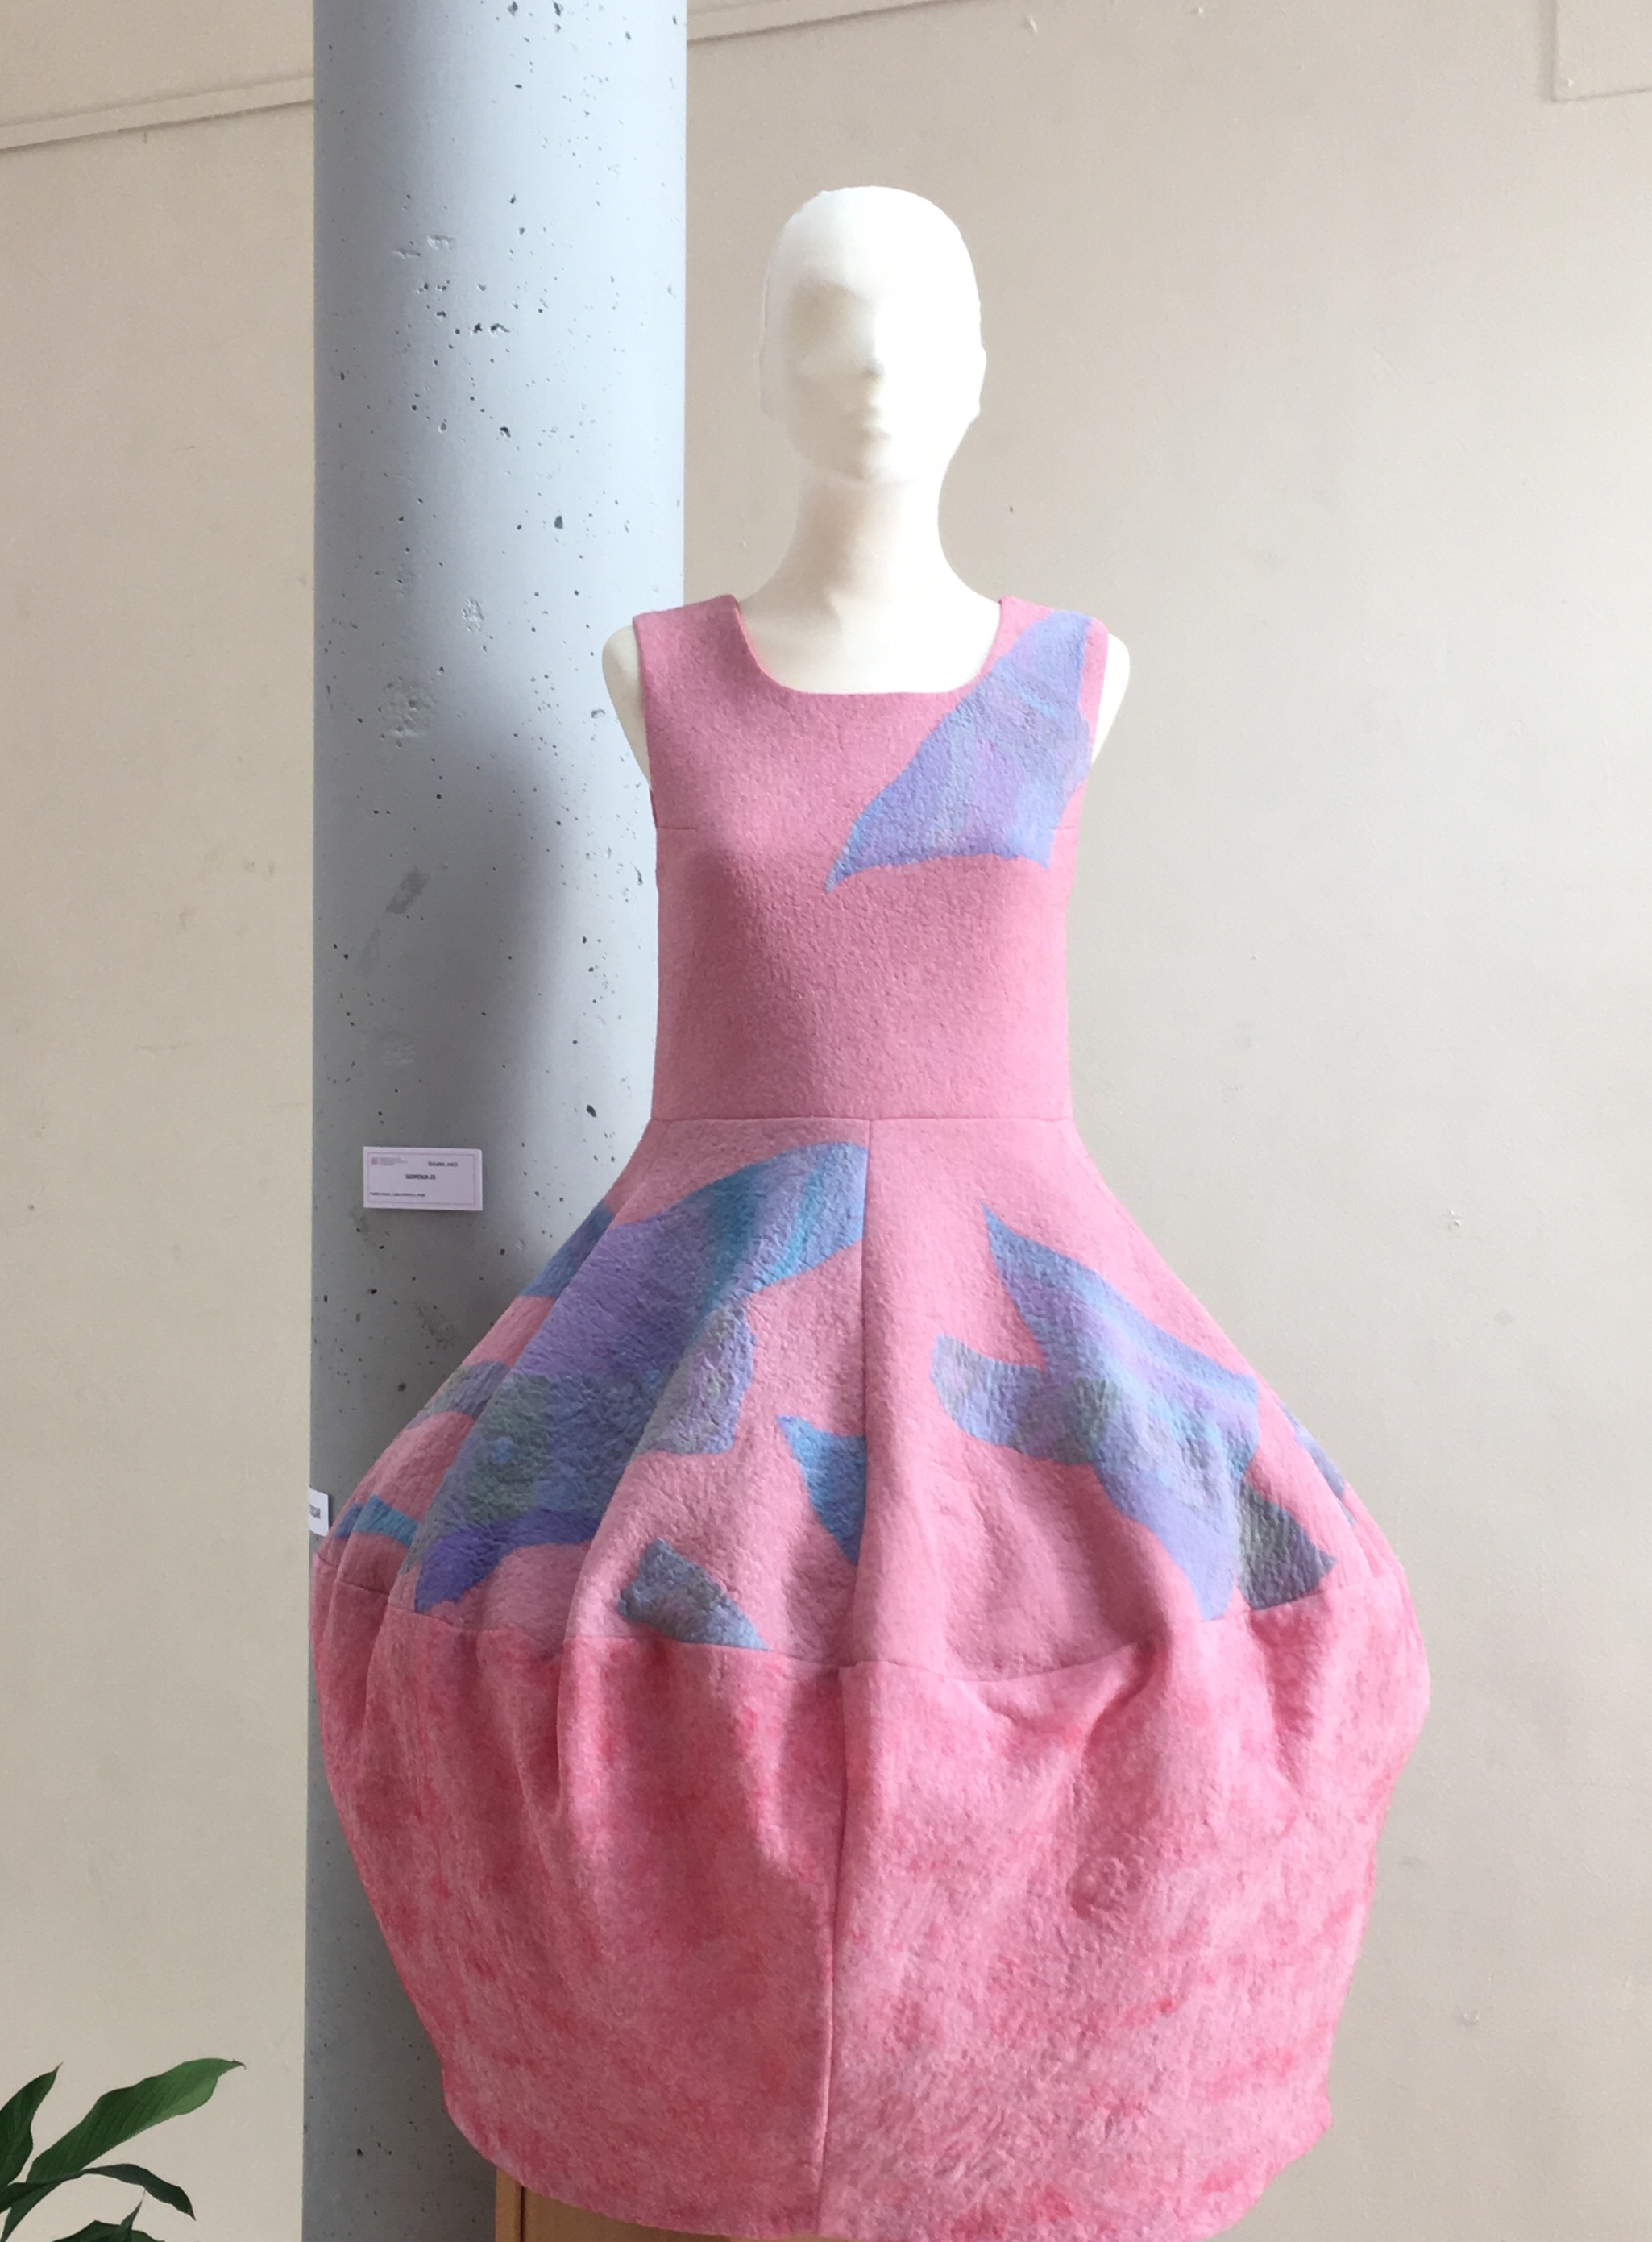 Nuno Felt Dress in Textileando Madrid Exhibition